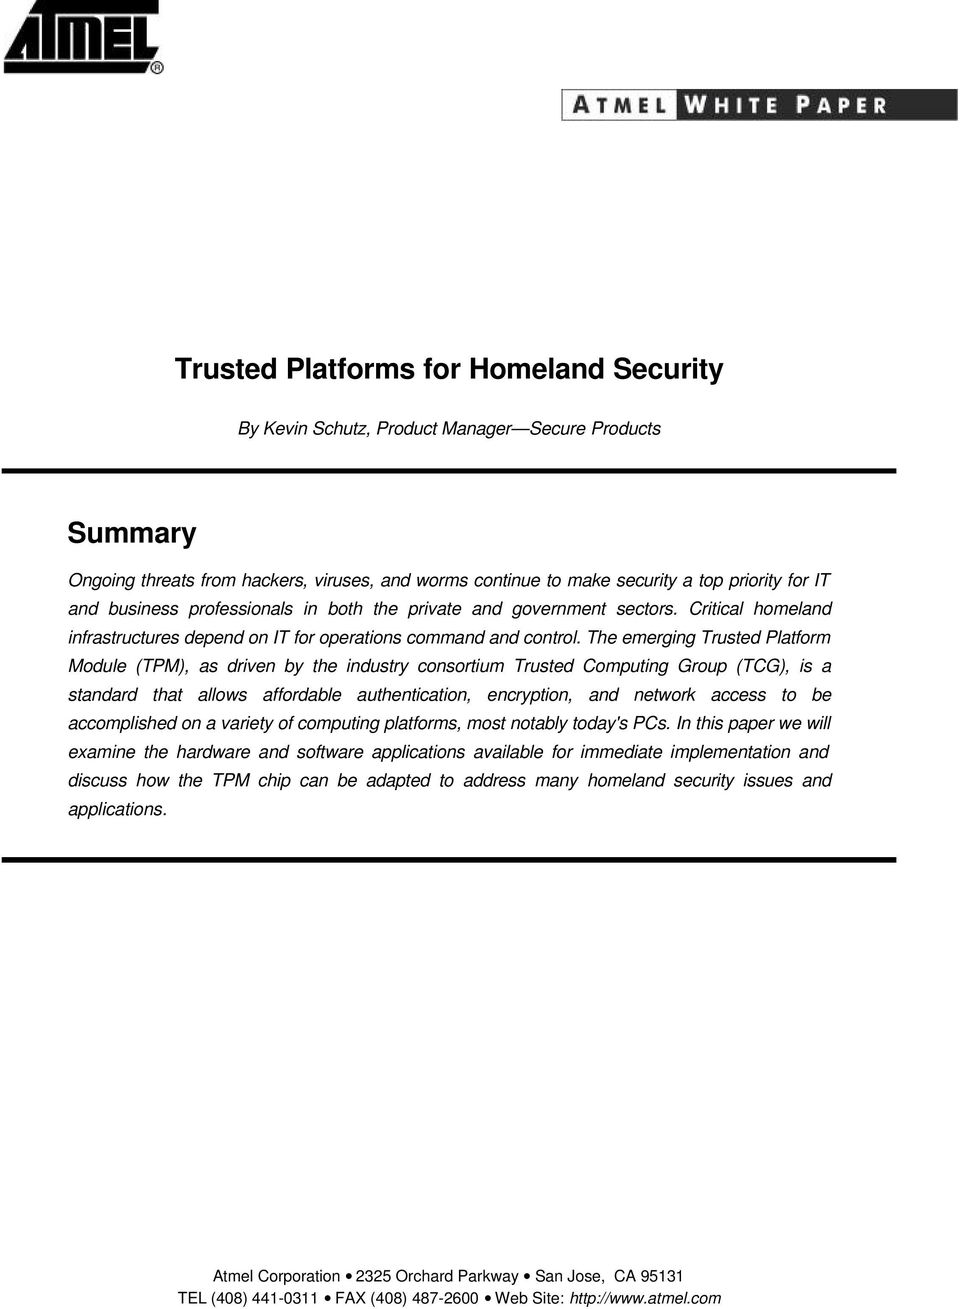 The emerging Trusted Platform Module (TPM), as driven by the industry consortium Trusted Computing Group (TCG), is a standard that allows affordable authentication, encryption, and network access to